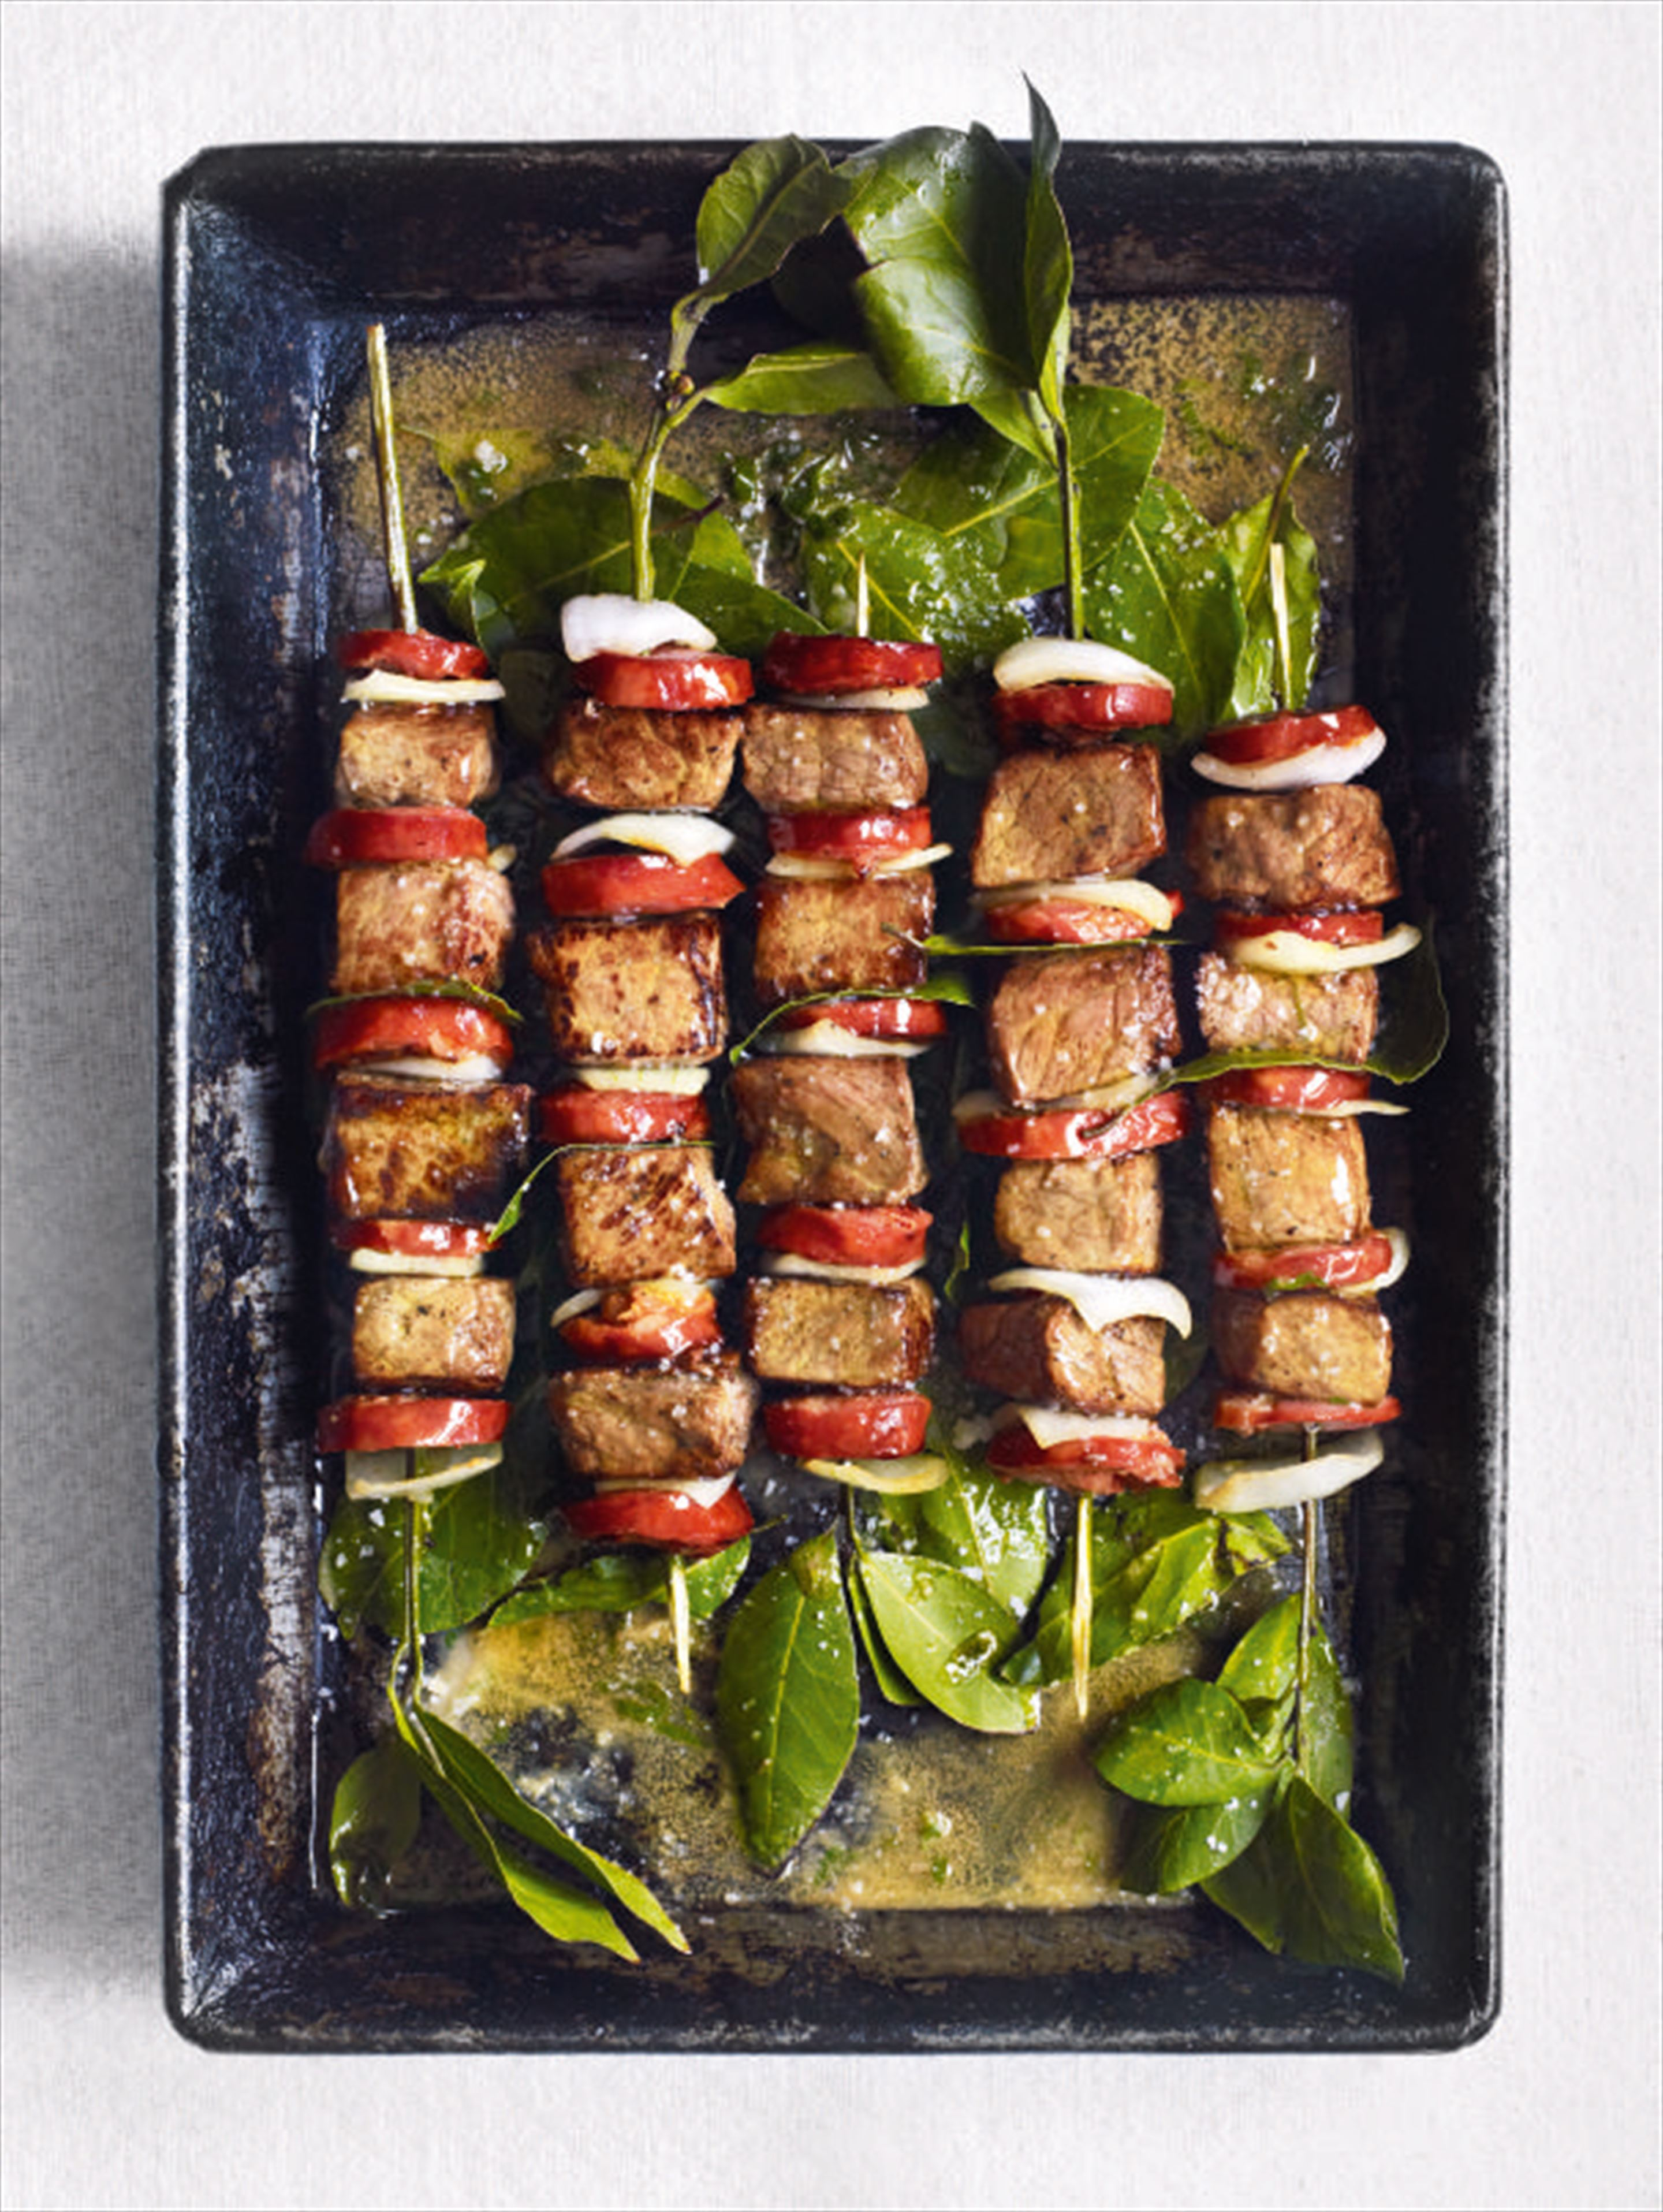 Beef skewers with chouriço and bay leaves